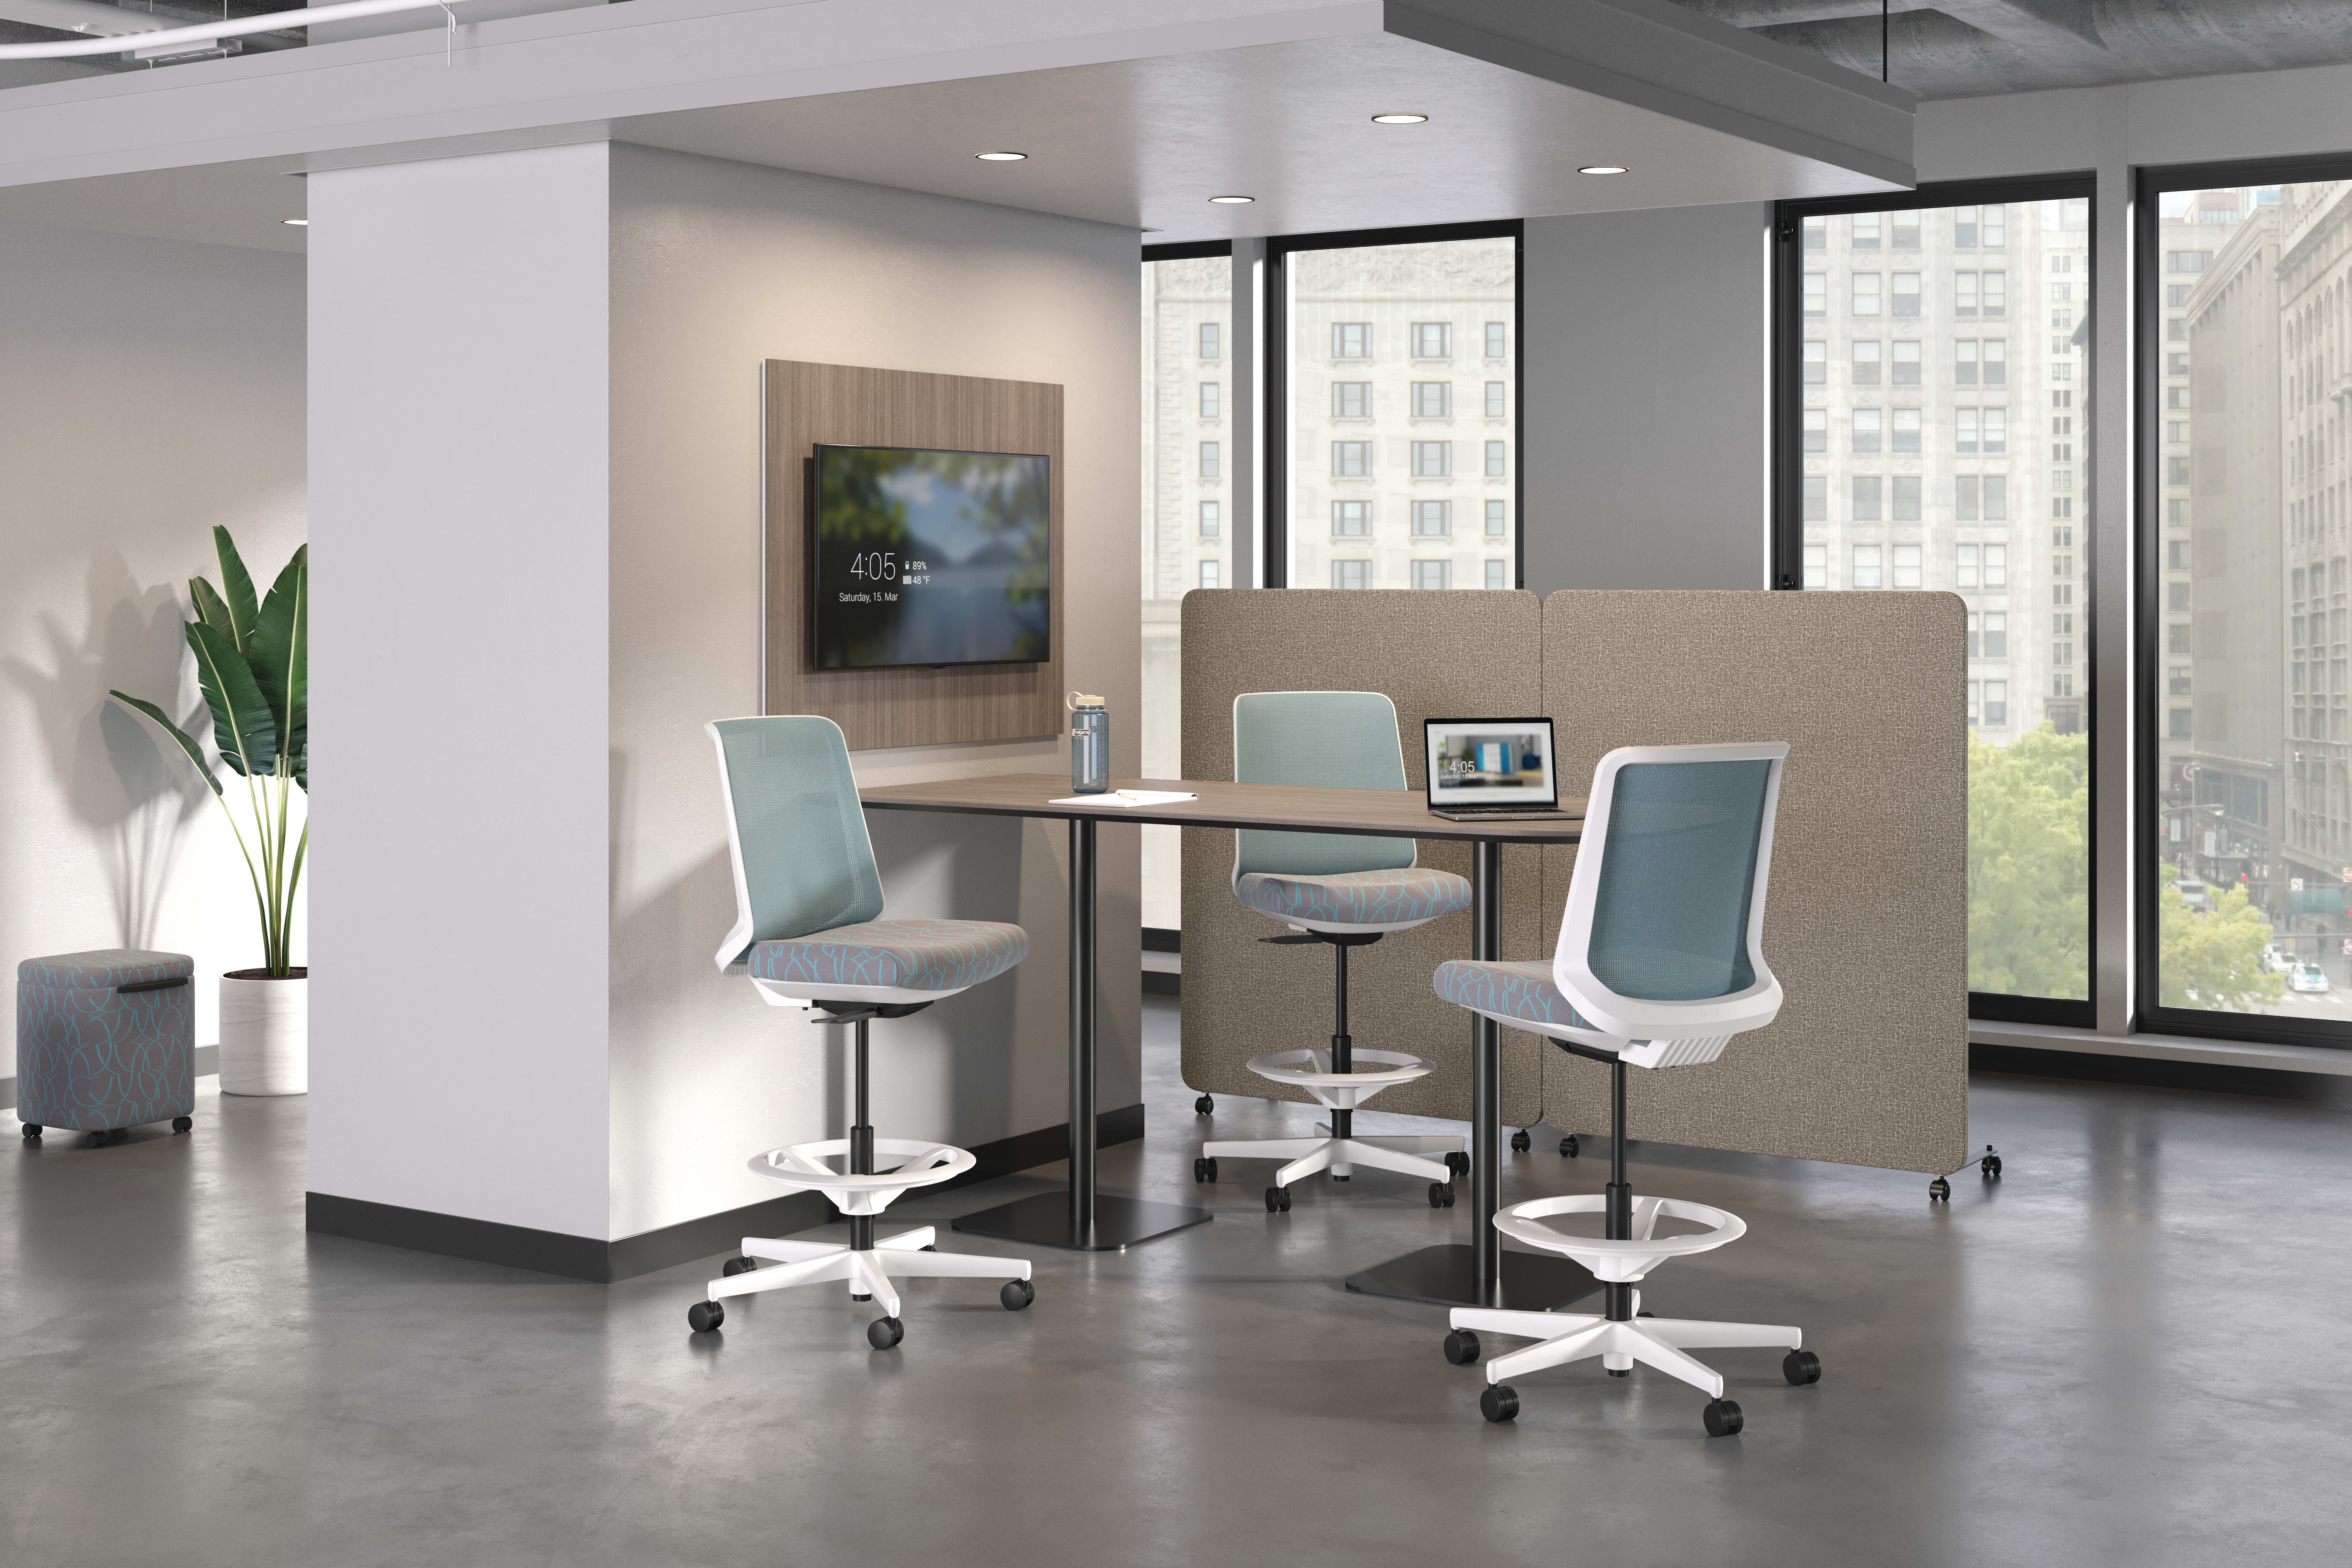 Cliq Stools with Birk table, Softline Floor Screen and Work Wall media Tile.